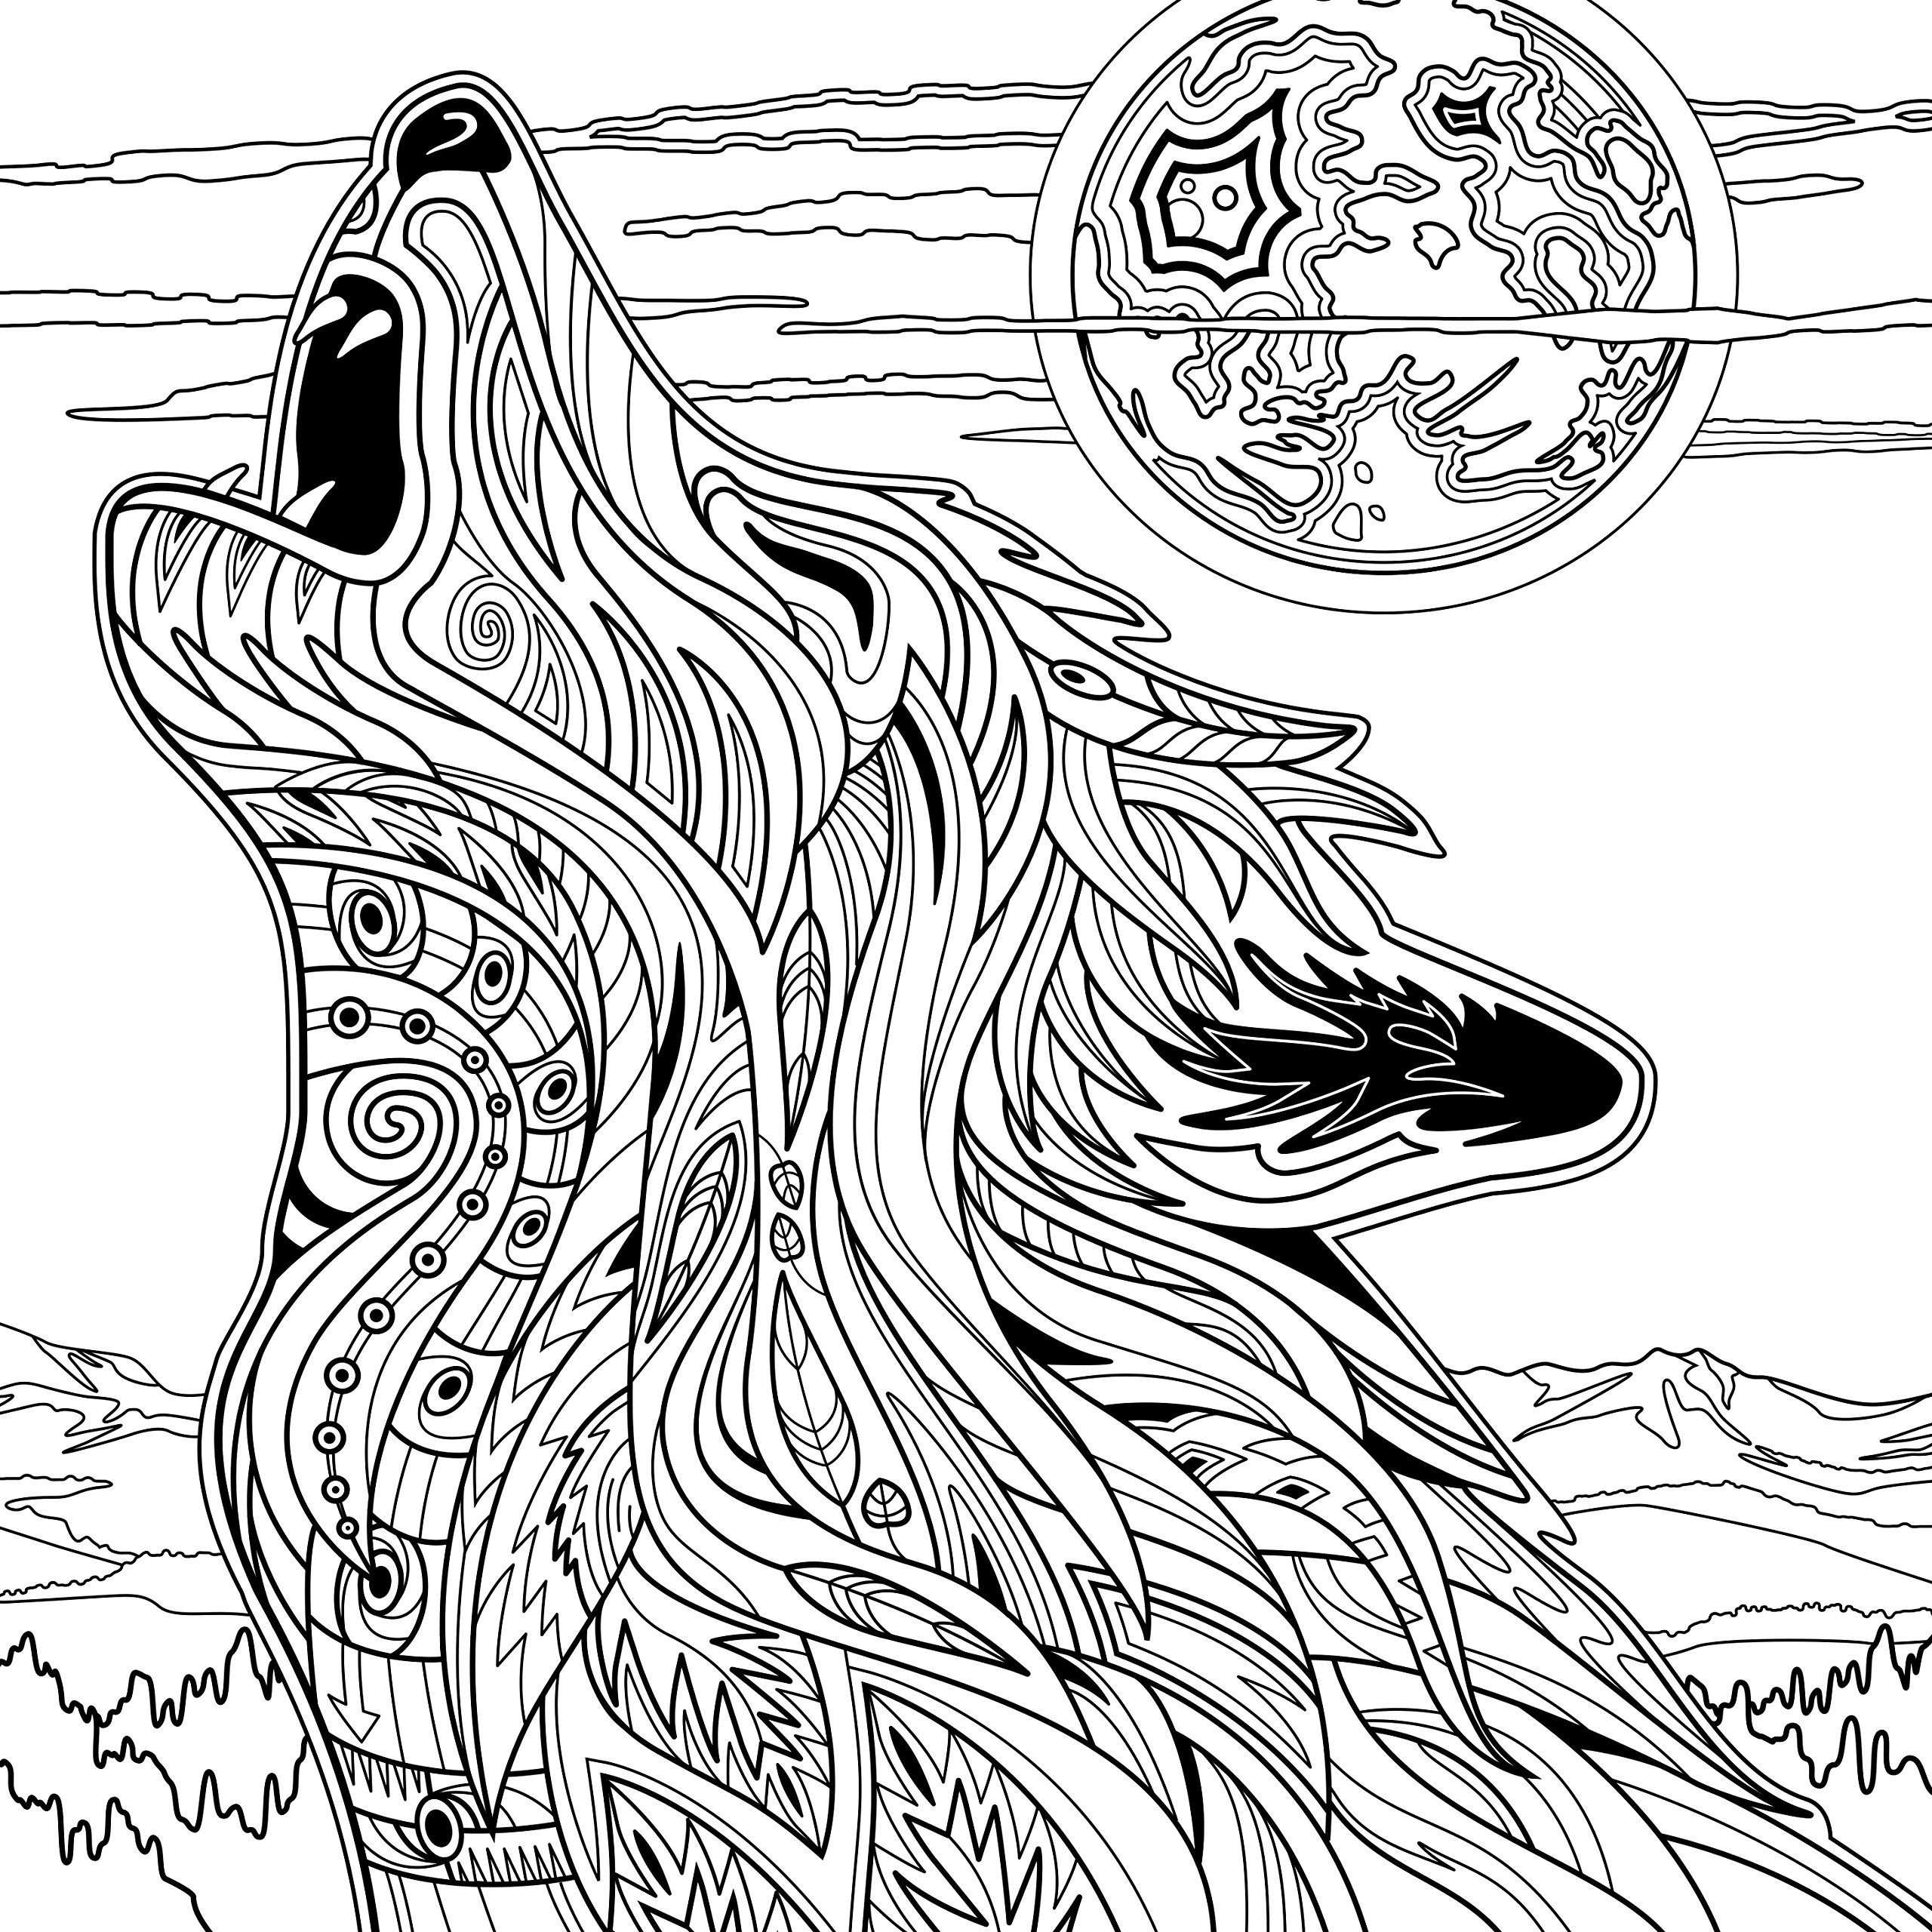 Yellowstone National Park Adult Coloring Book Dave Ember Don